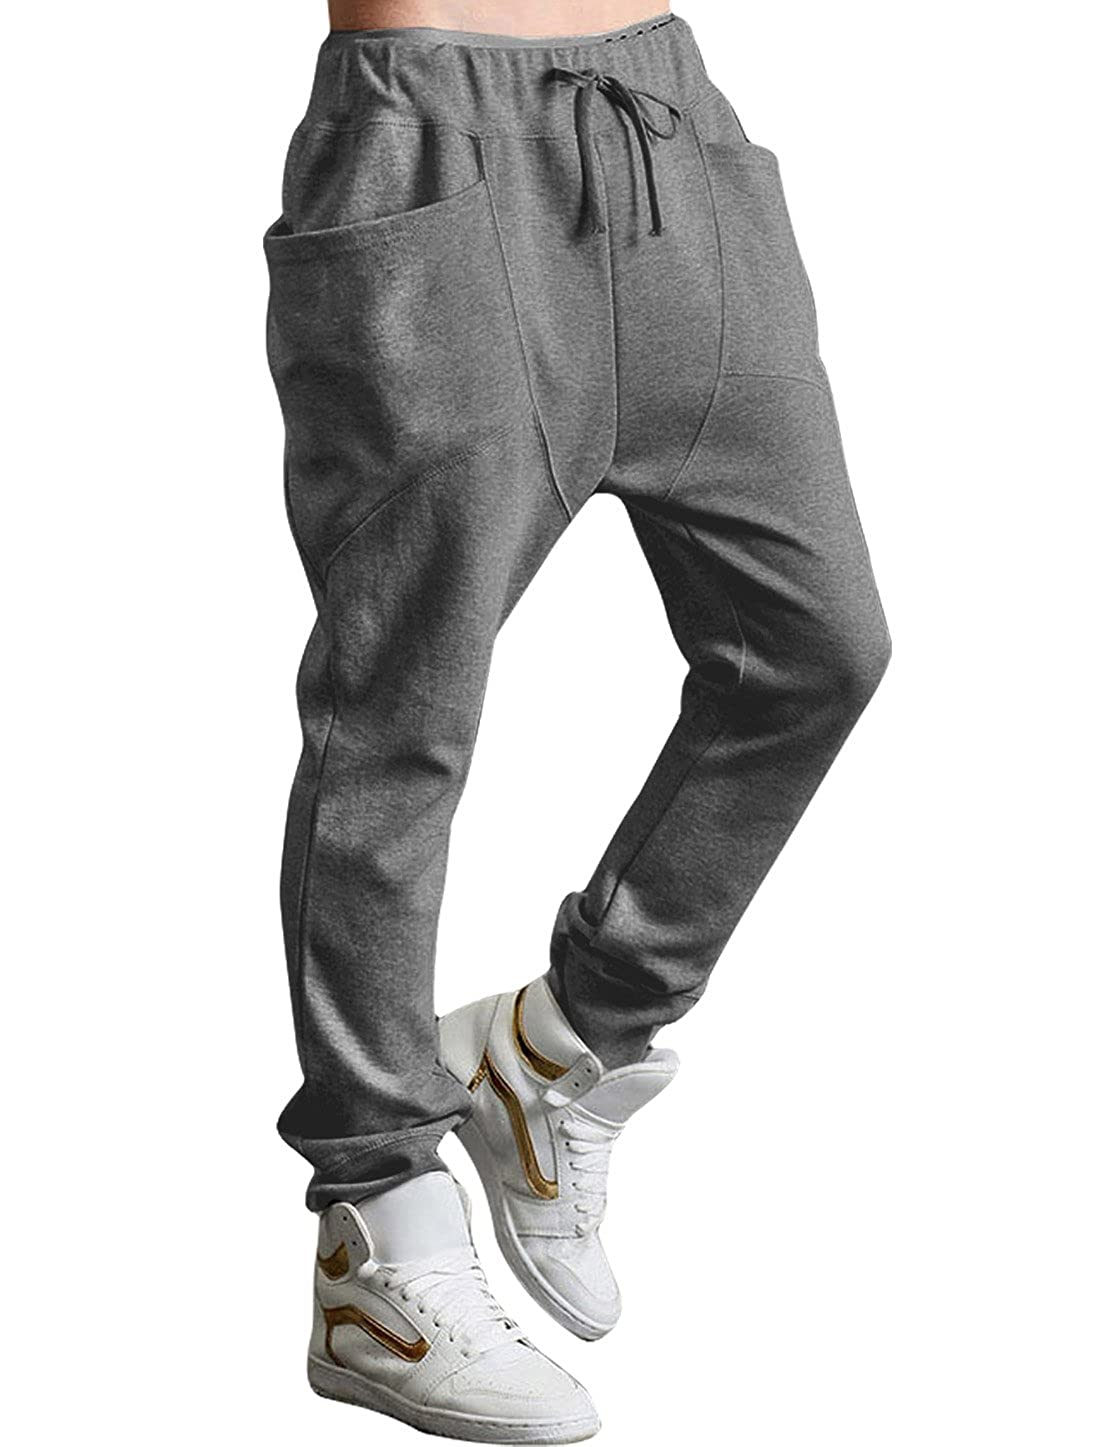 e1b78ac30e uxcell Men Drop Crotch Funnel Pockets Drawstring Sweatpants